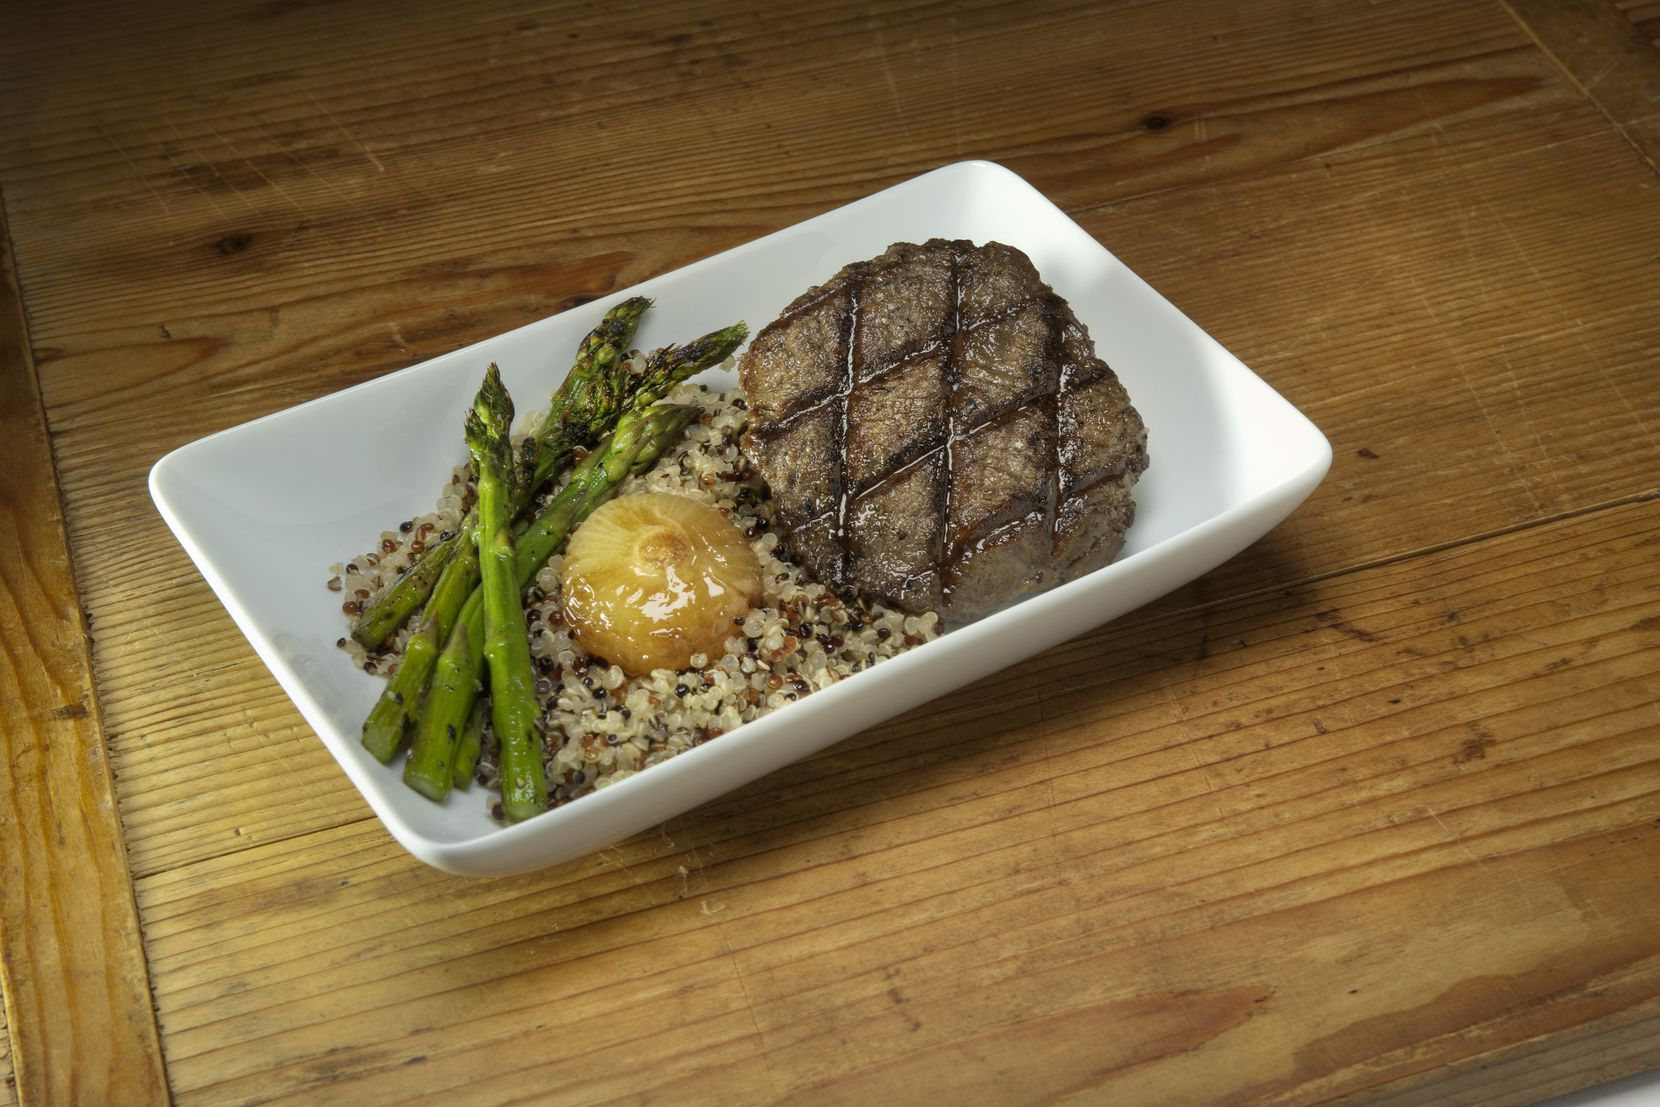 A peppercorn-crusted tenderloin with asparagus and quinoa is one of several dishes designed by Dallas chef Julian Barsotti debuting on American Airlines flights Nov. 1